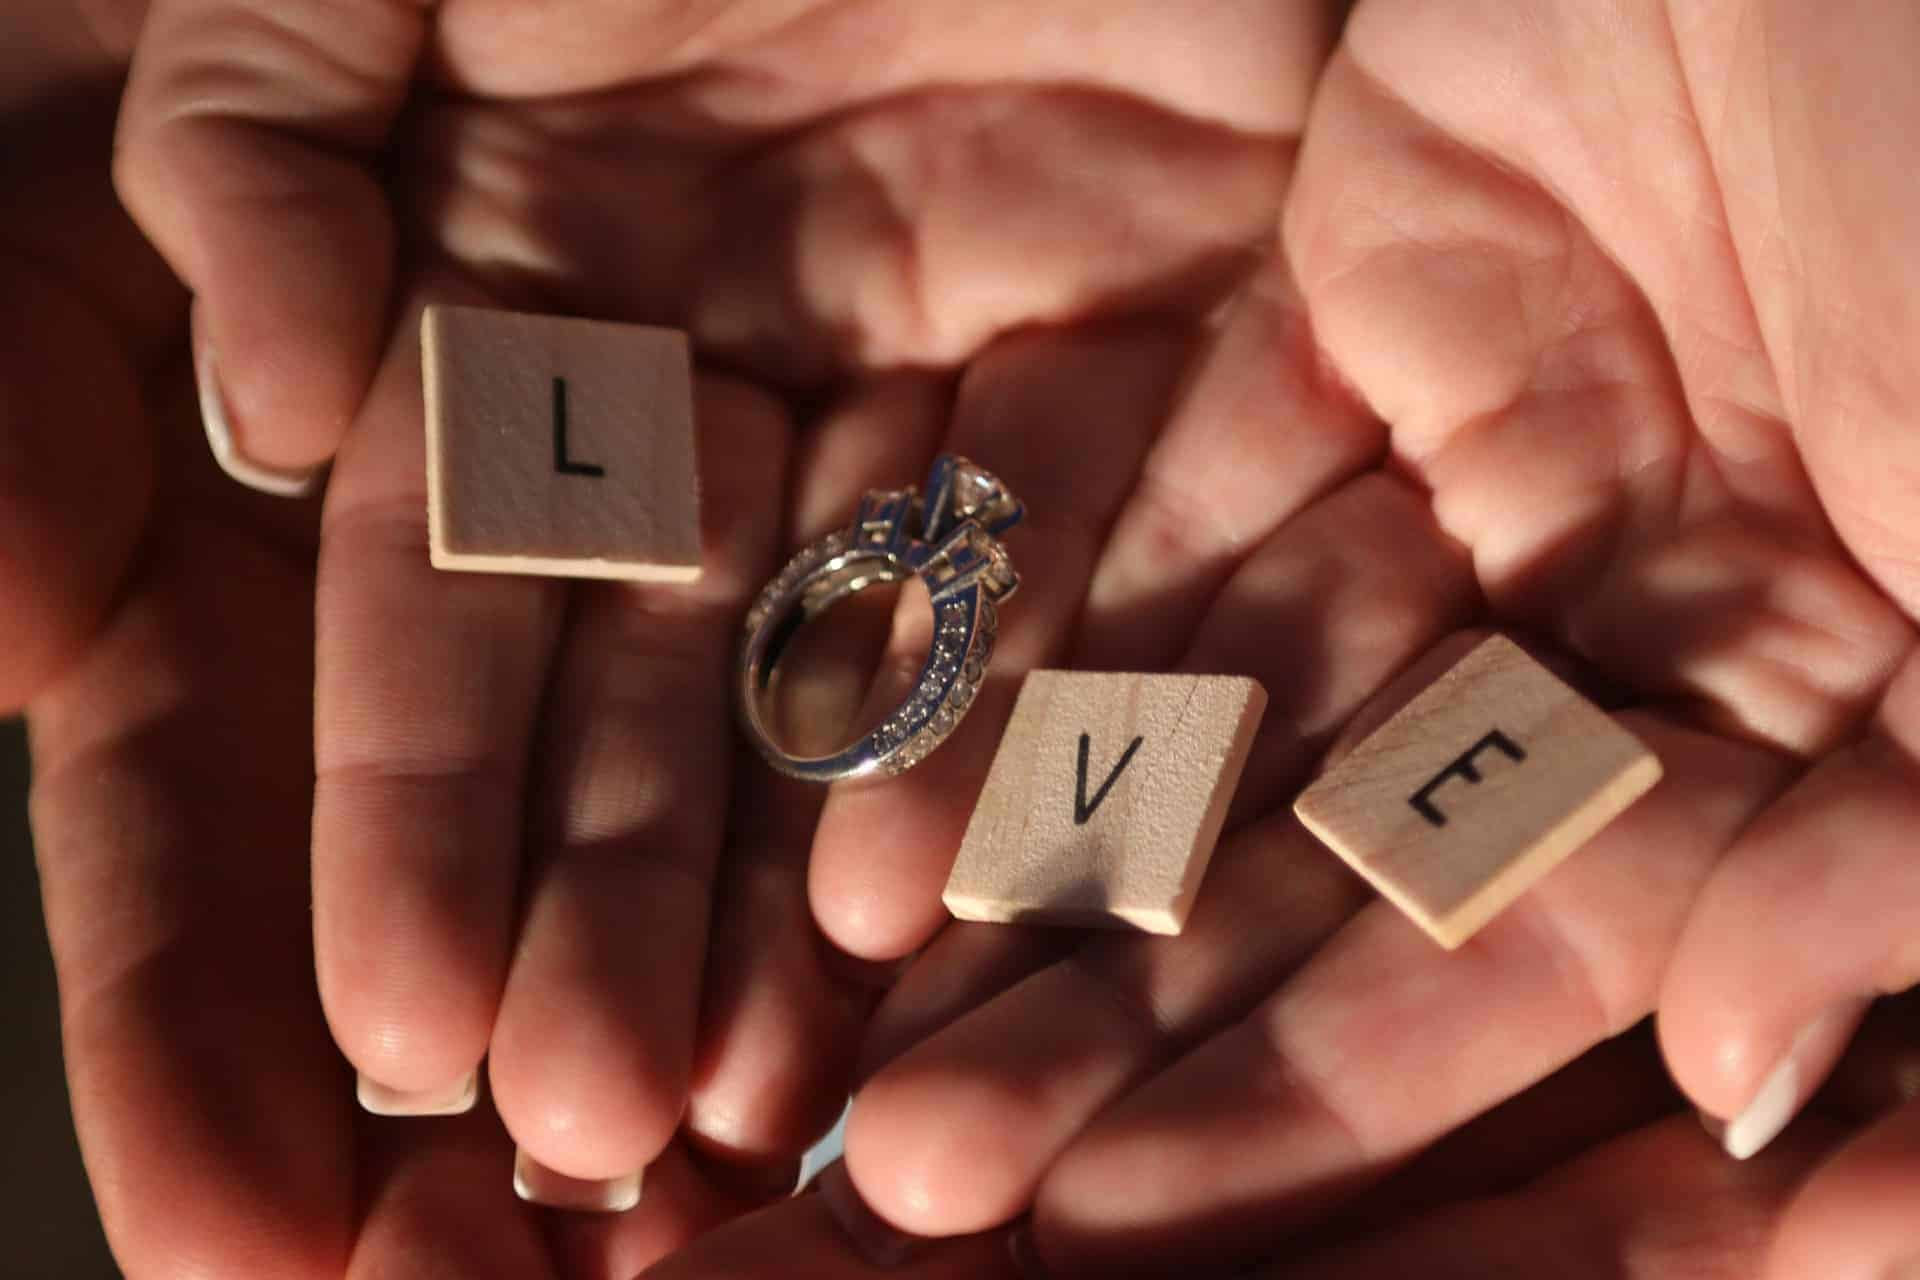 How to Deal with an Engagement Ring that You Don't Like